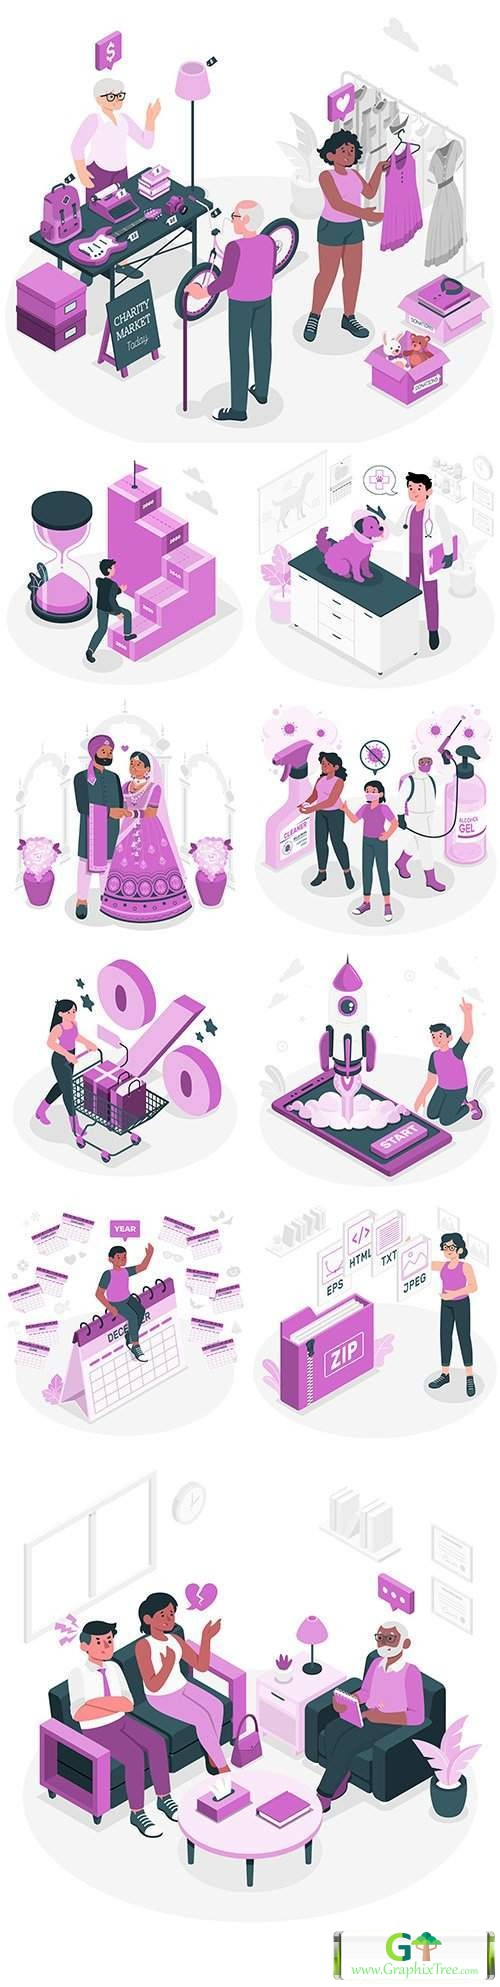 People of different professions and lifestyle isometric illustrations 5